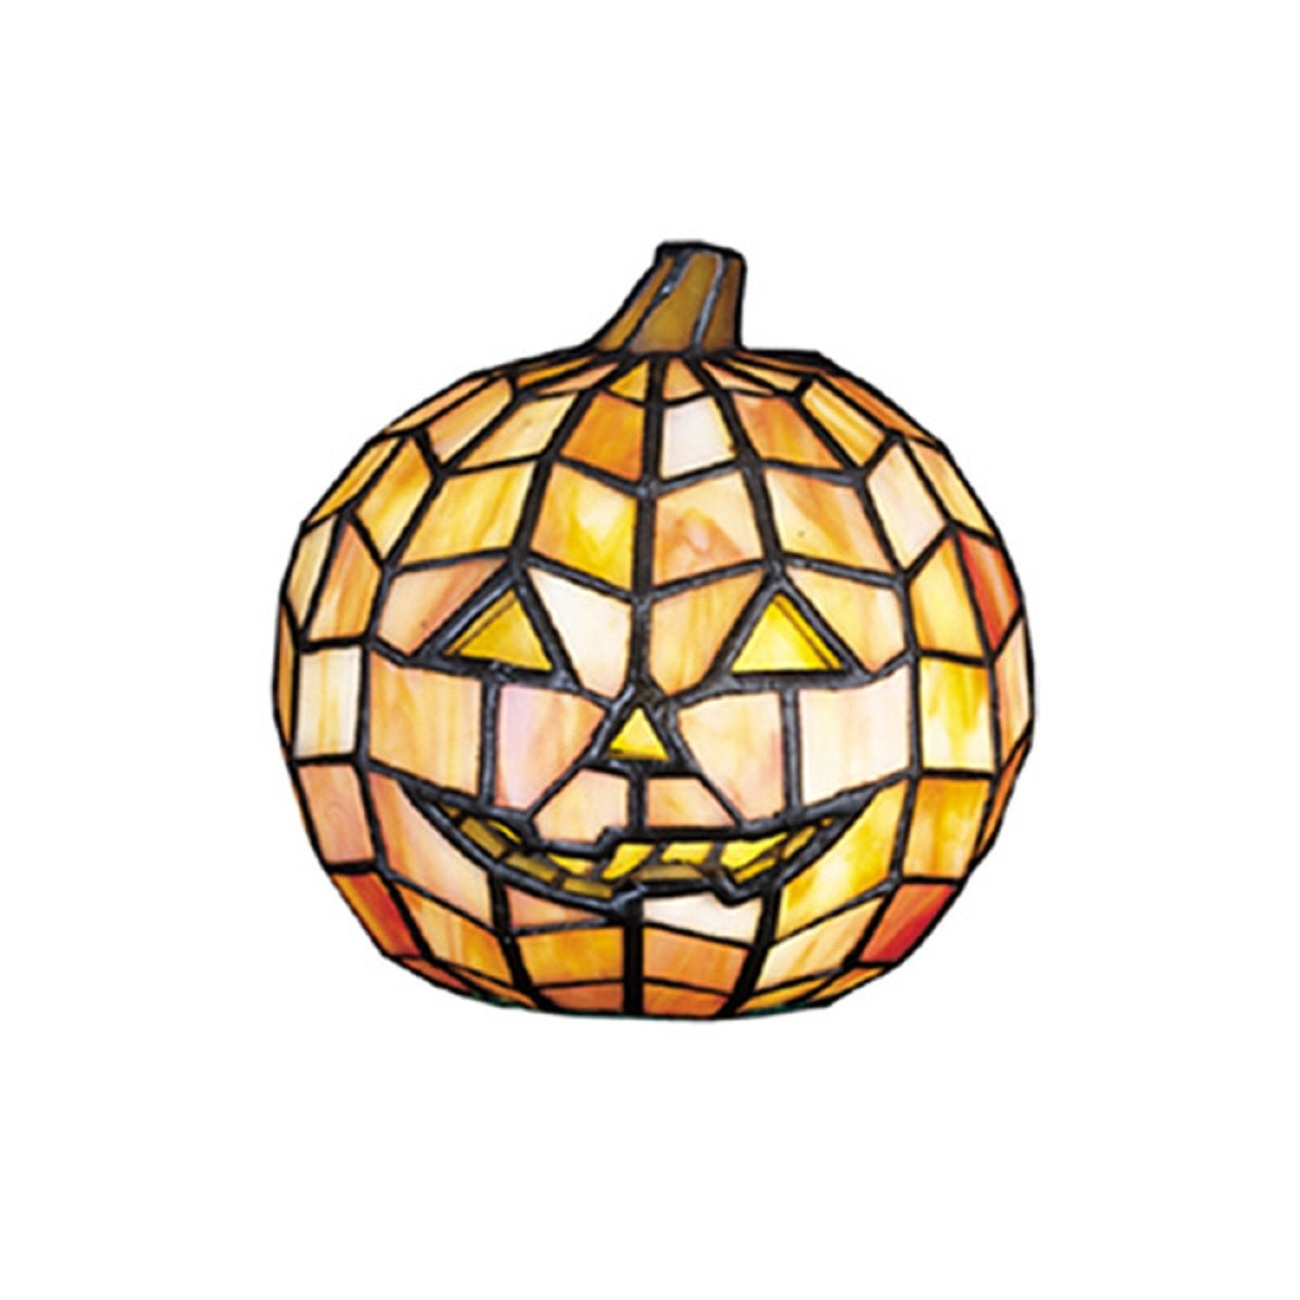 Tiffany halloween jack o lantern pumpkin lamp